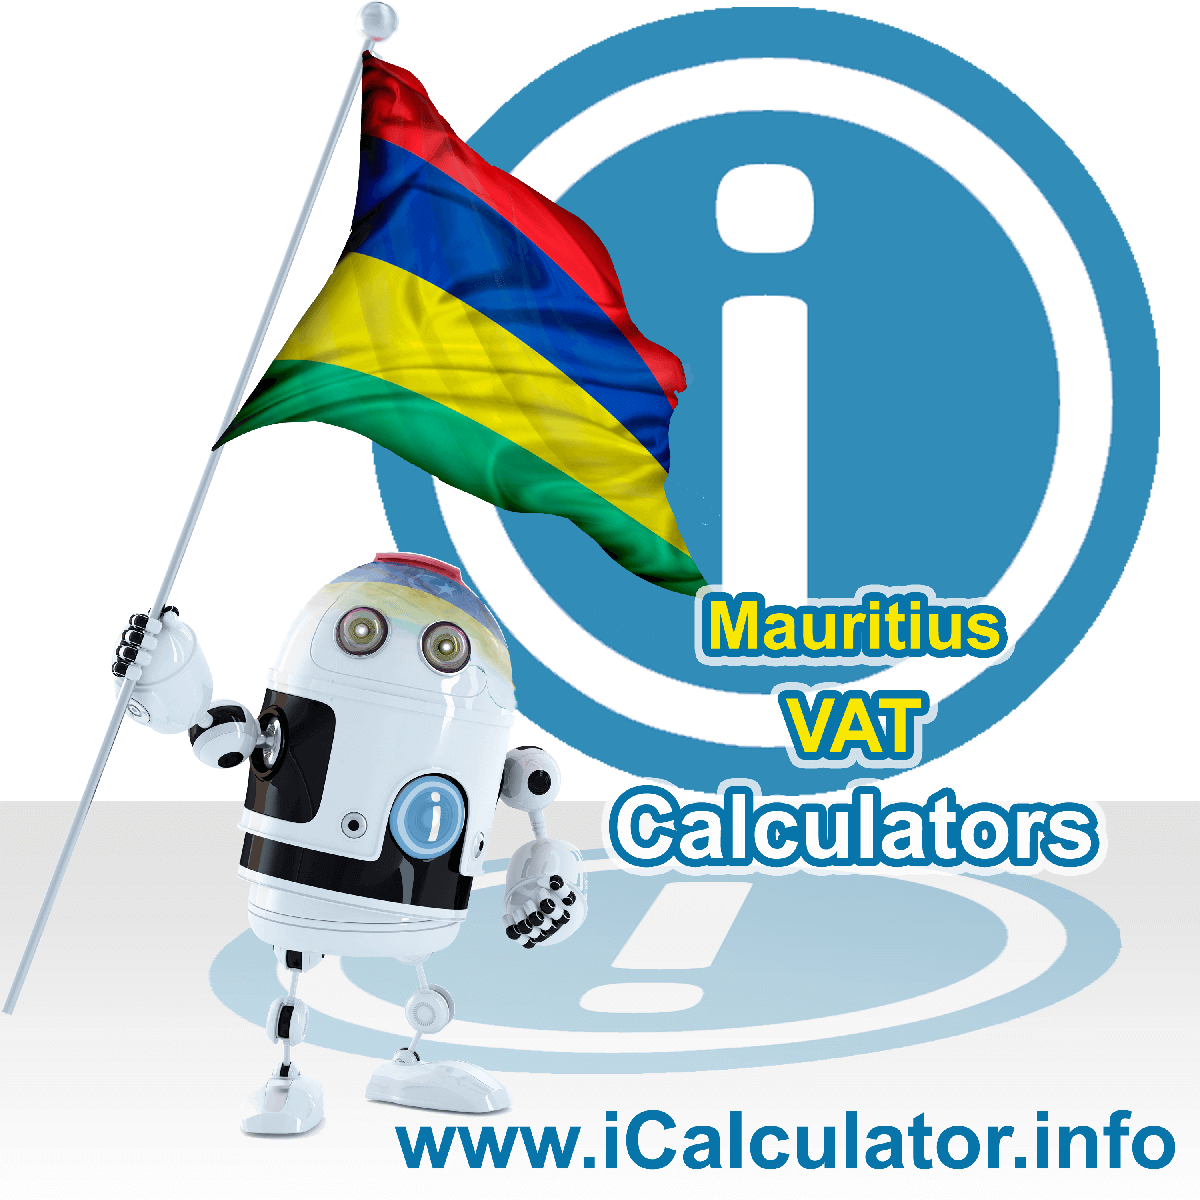 Mauritius VAT Calculator. This image shows the Mauritius flag and information relating to the VAT formula used for calculating Value Added Tax in Mauritius using the Mauritius VAT Calculator in 2021